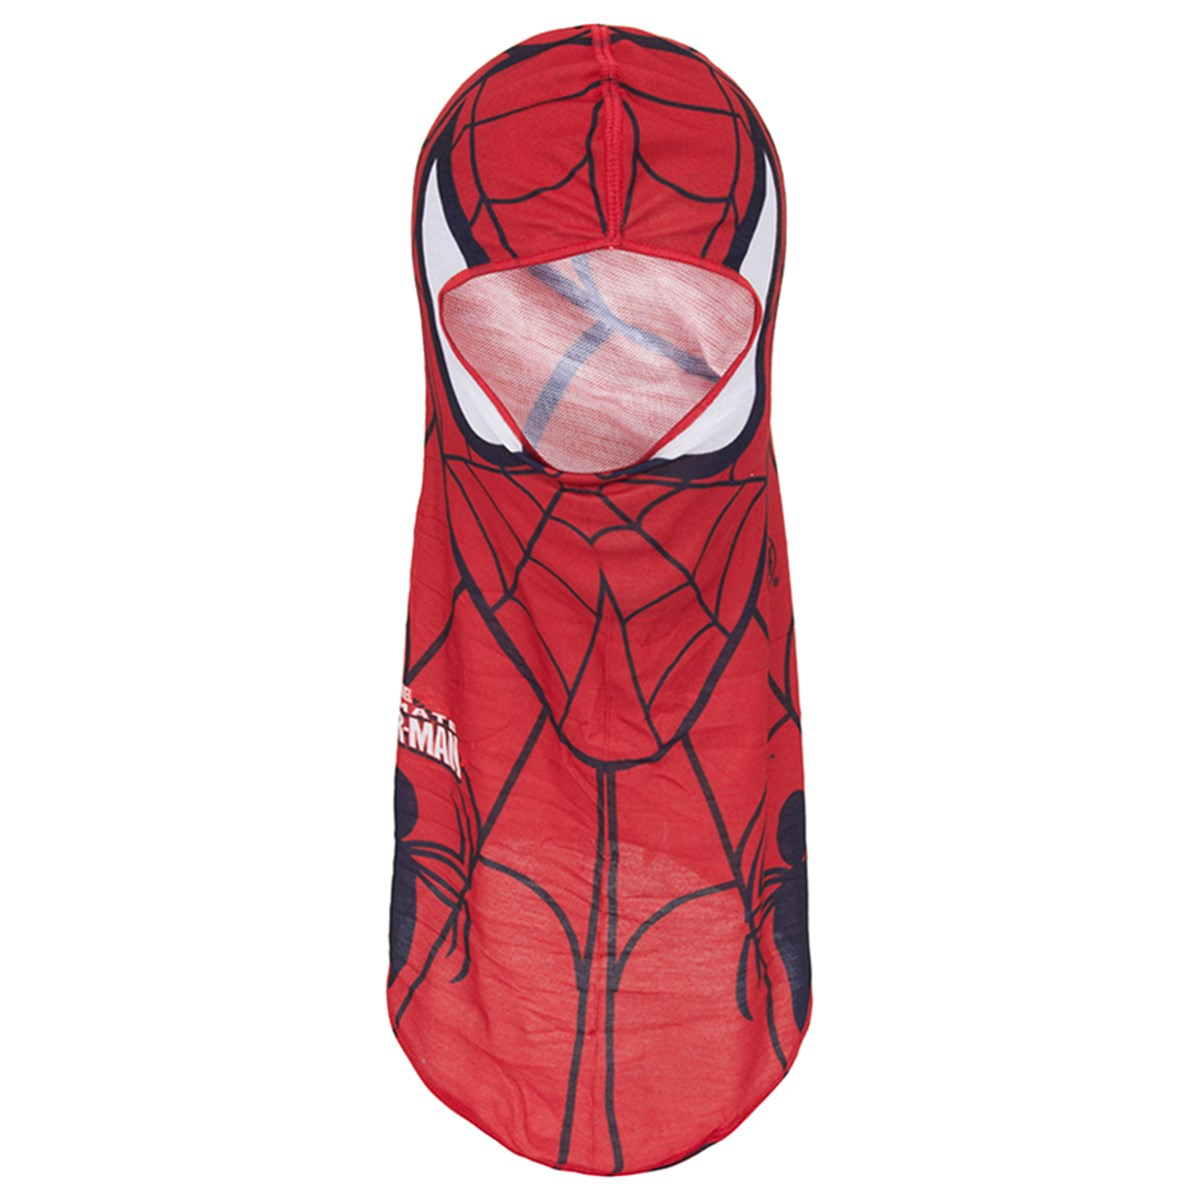 06e2b2770e Buff Spiderman Balaclava